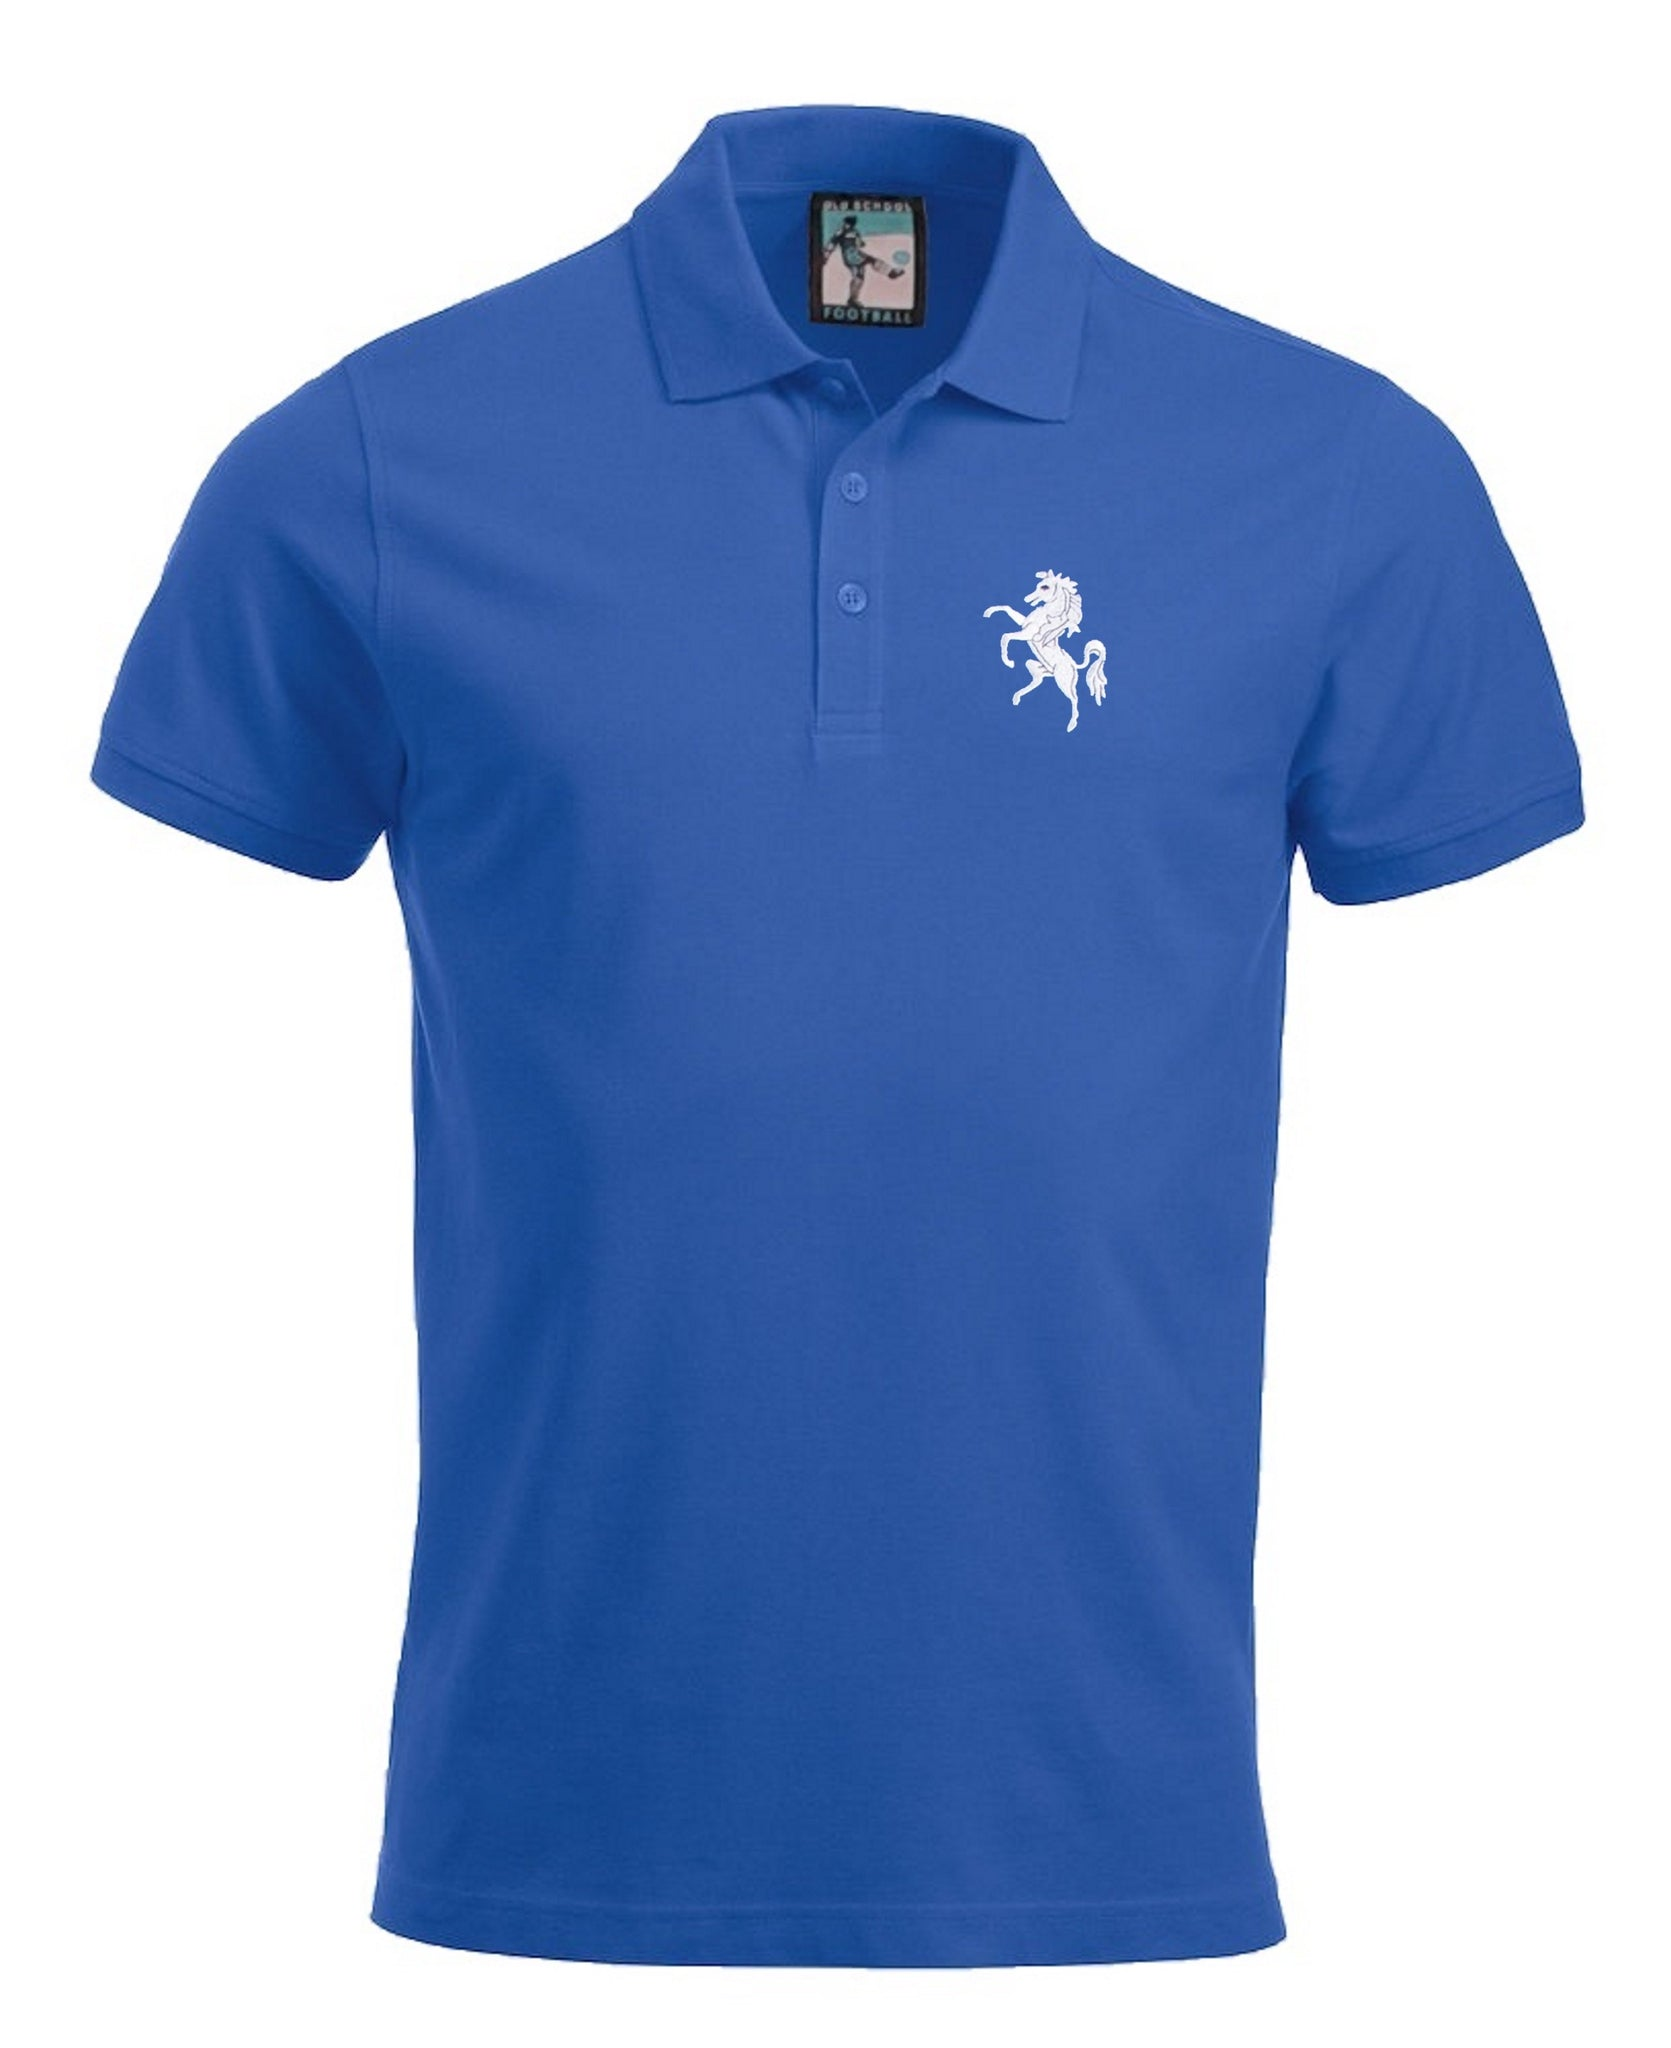 Gillingham 1977-1980 Polo - Old School Football